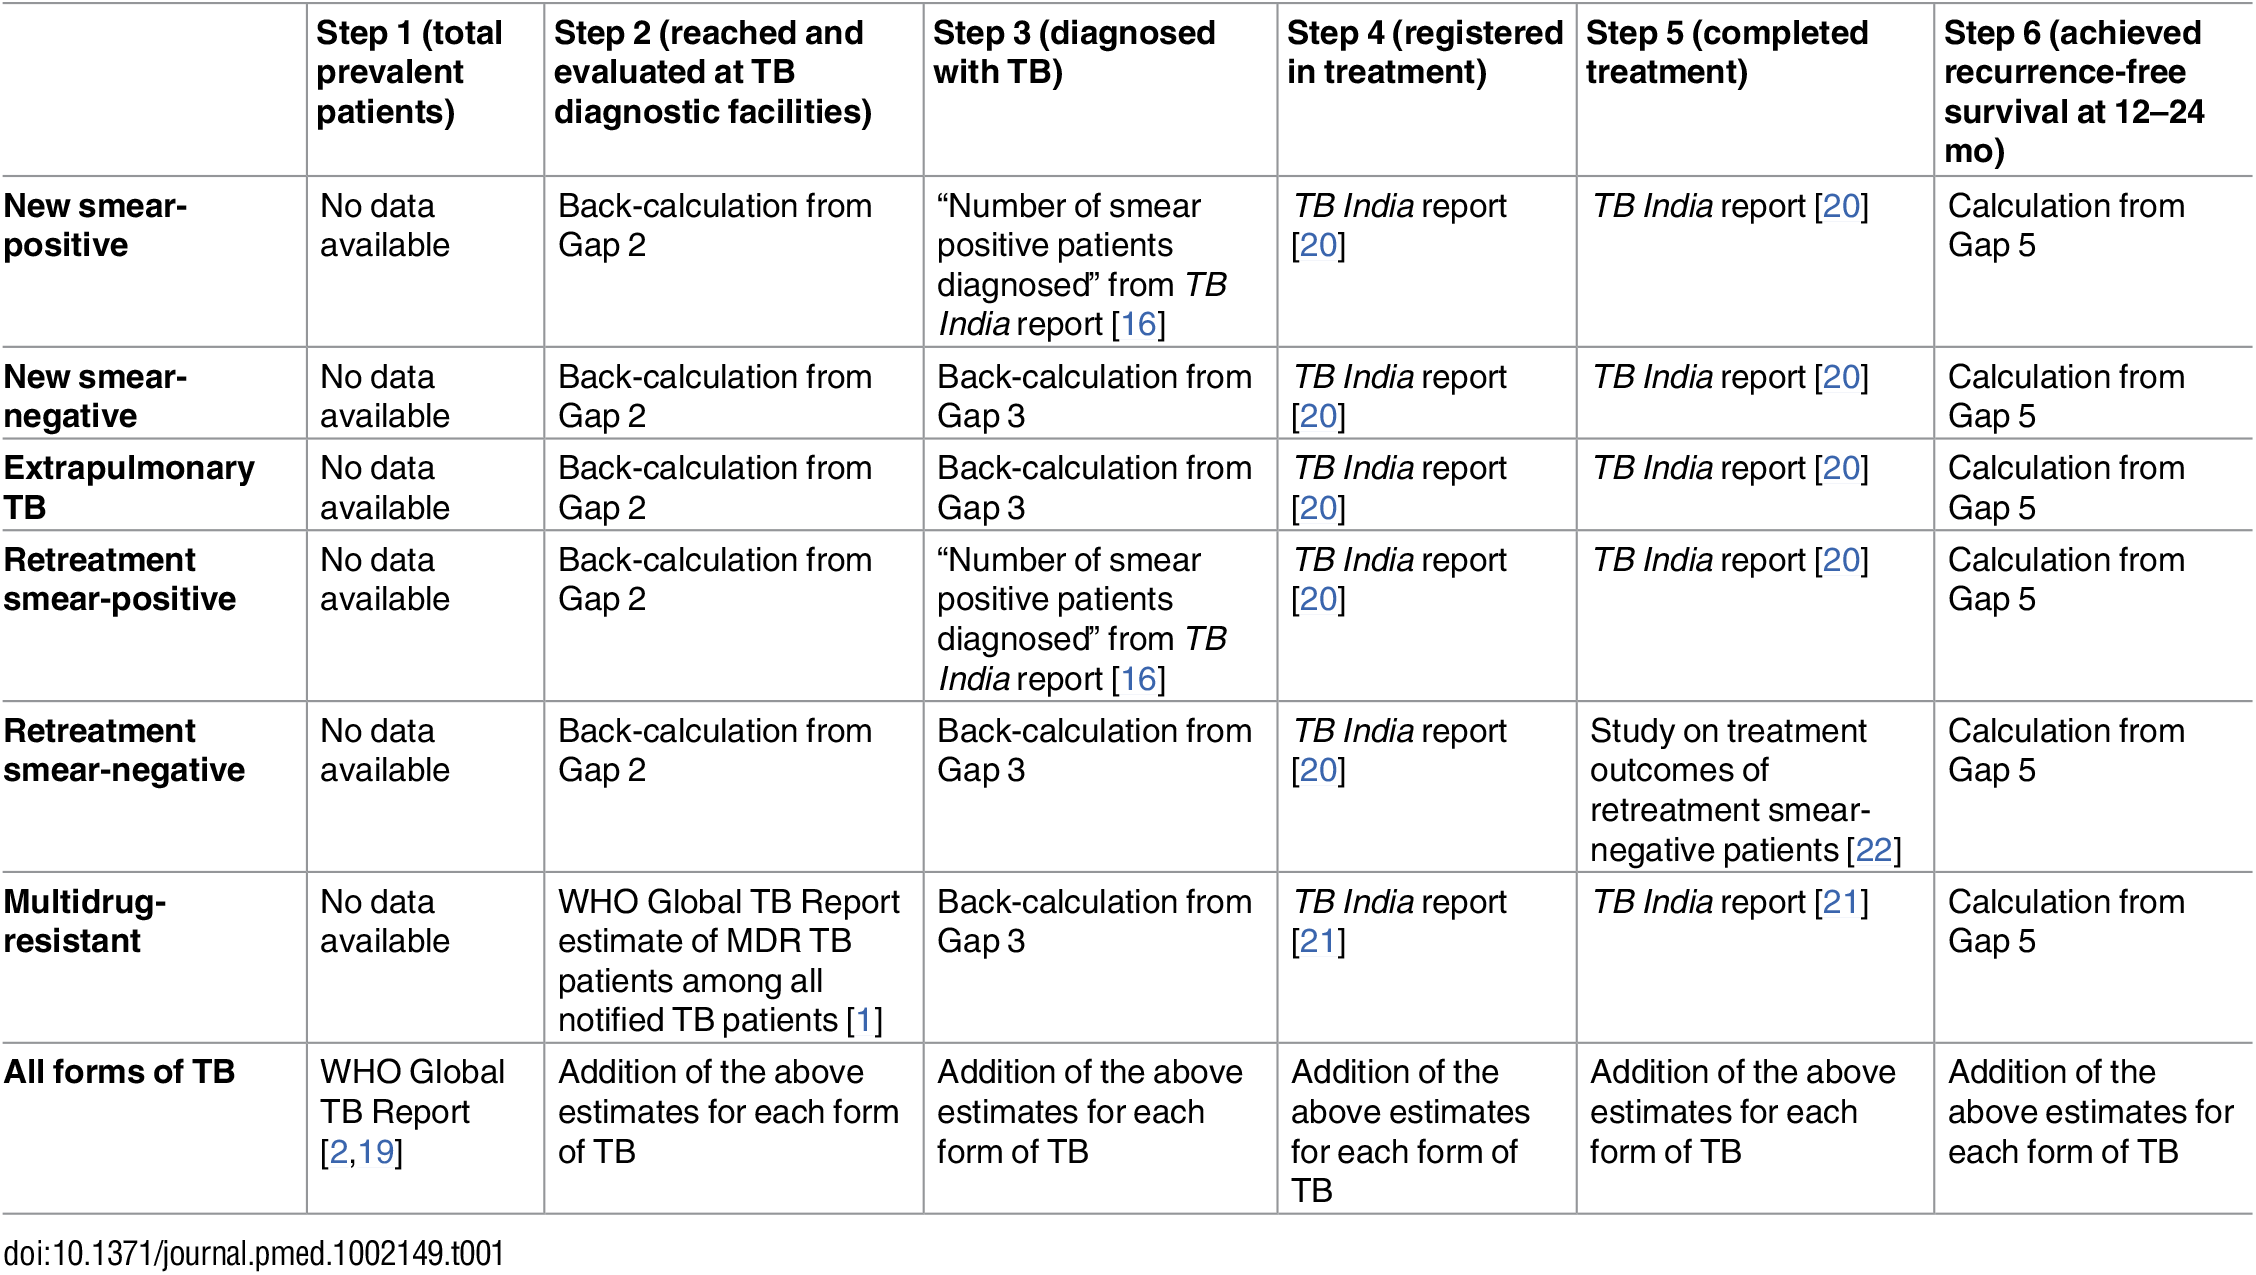 Methods and data sources used to estimate each step of the TB cascade of care for different subpopulations of patients and for the overall population of TB patients in India in 2013.